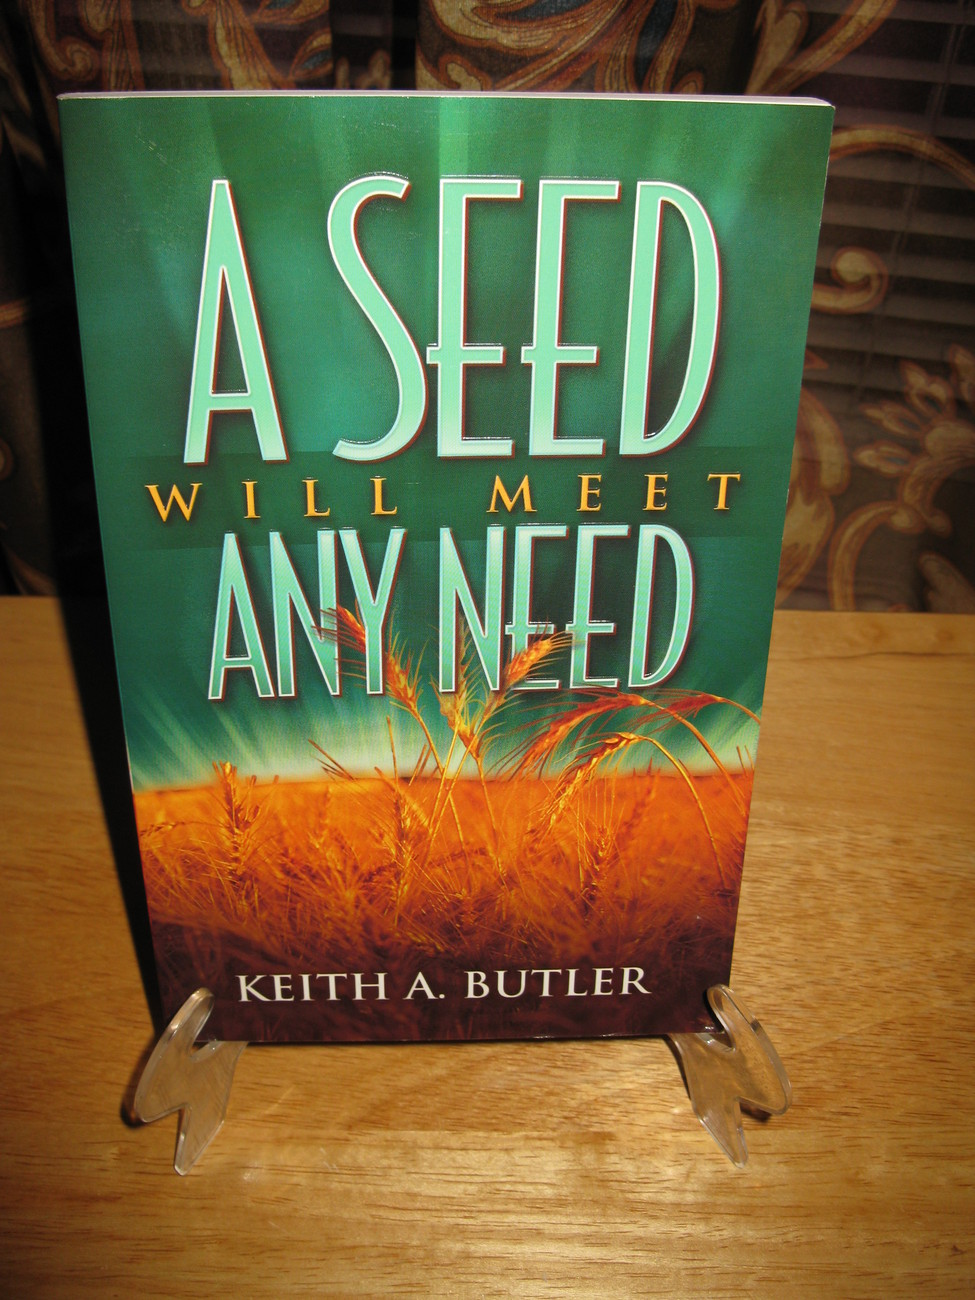 A Seed Will Meet Any Need by Keith A. Butler